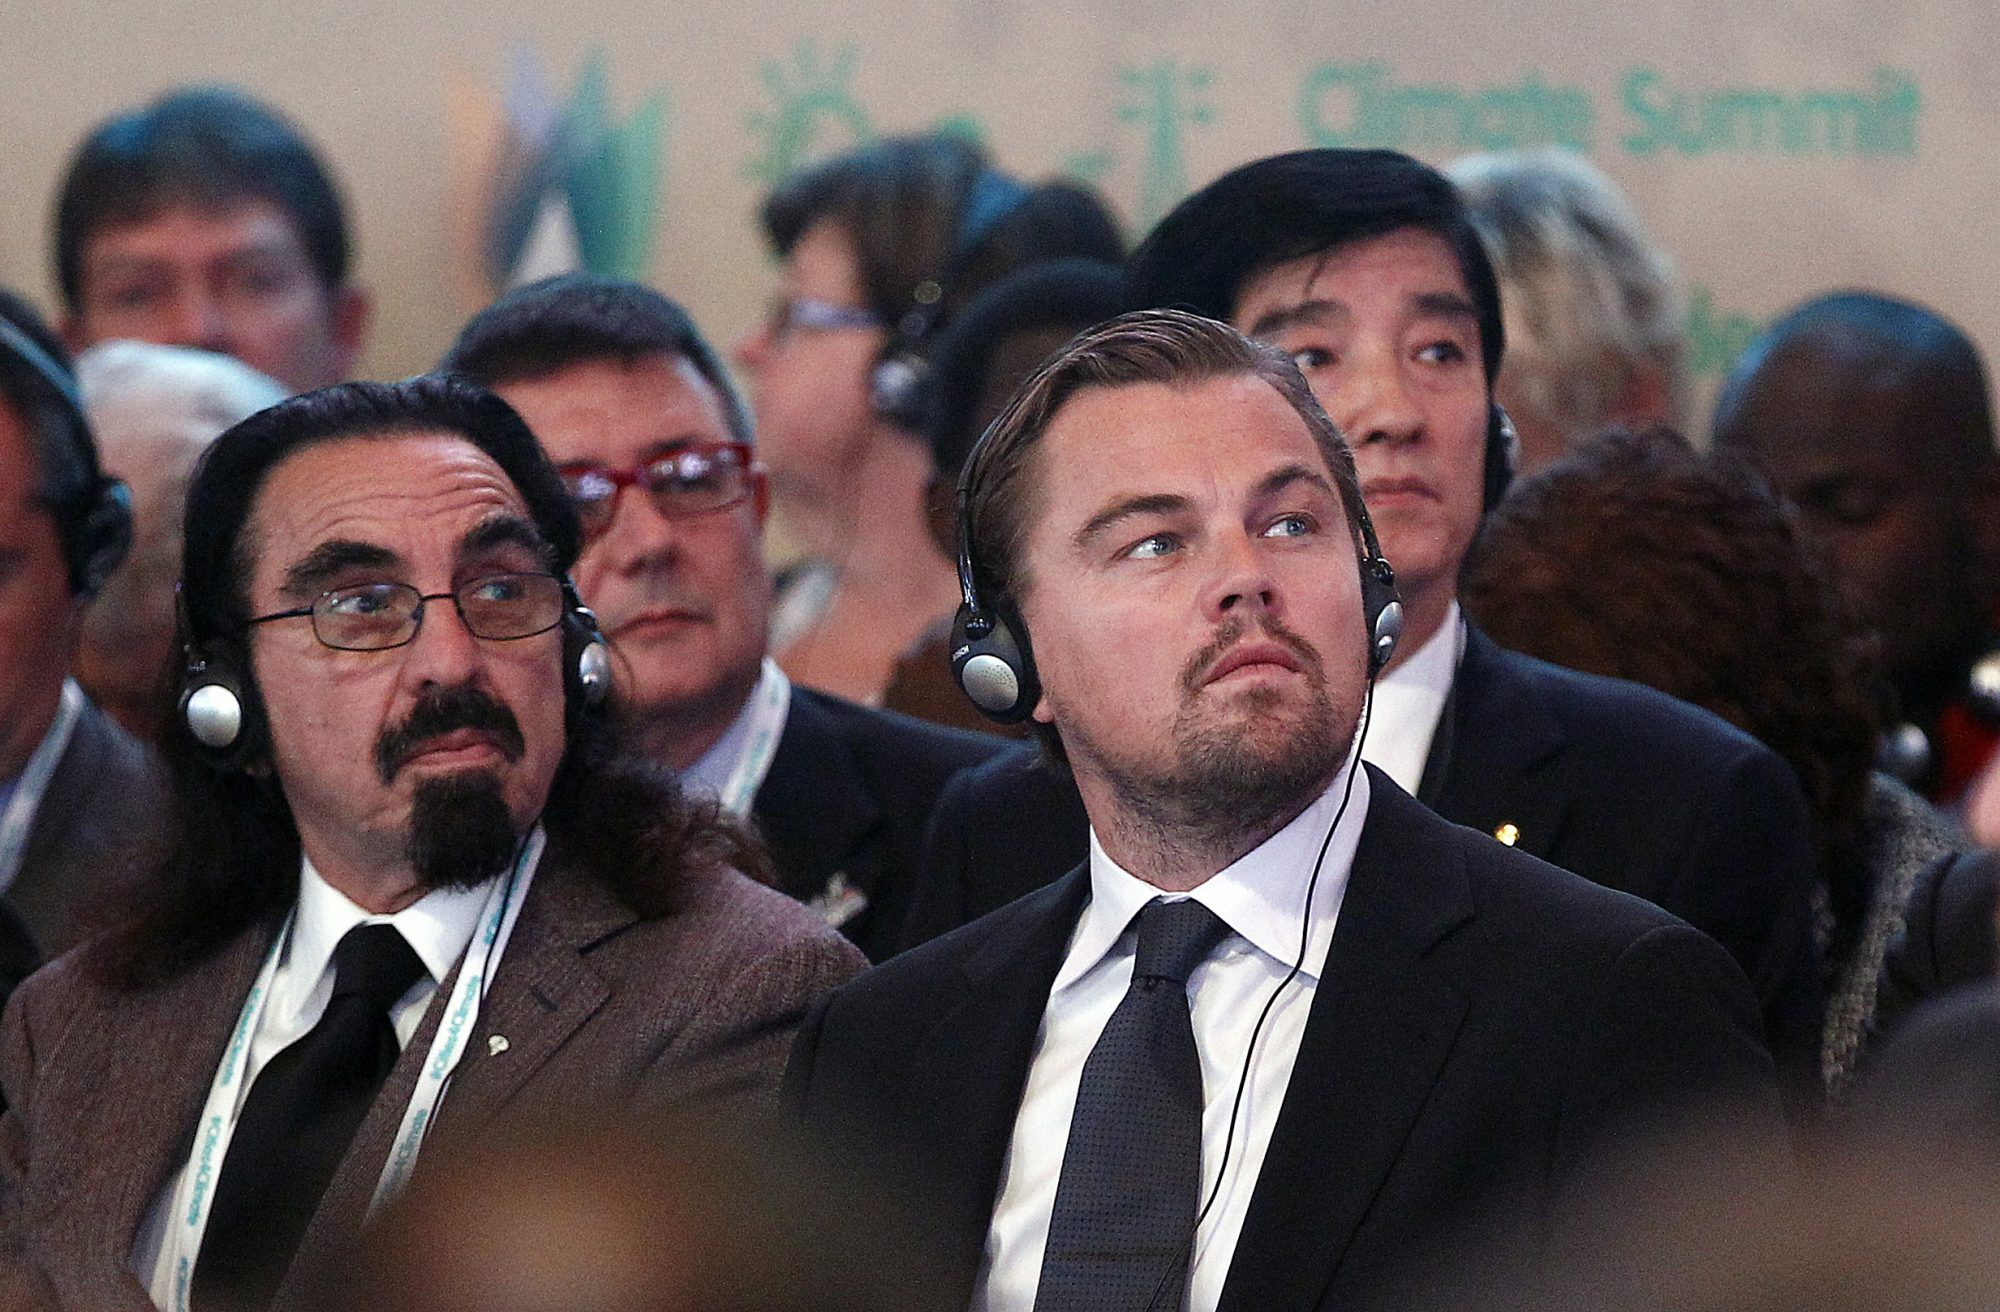 21st Session Of Conference On Climate Change COP21 : Day 5 In Paris